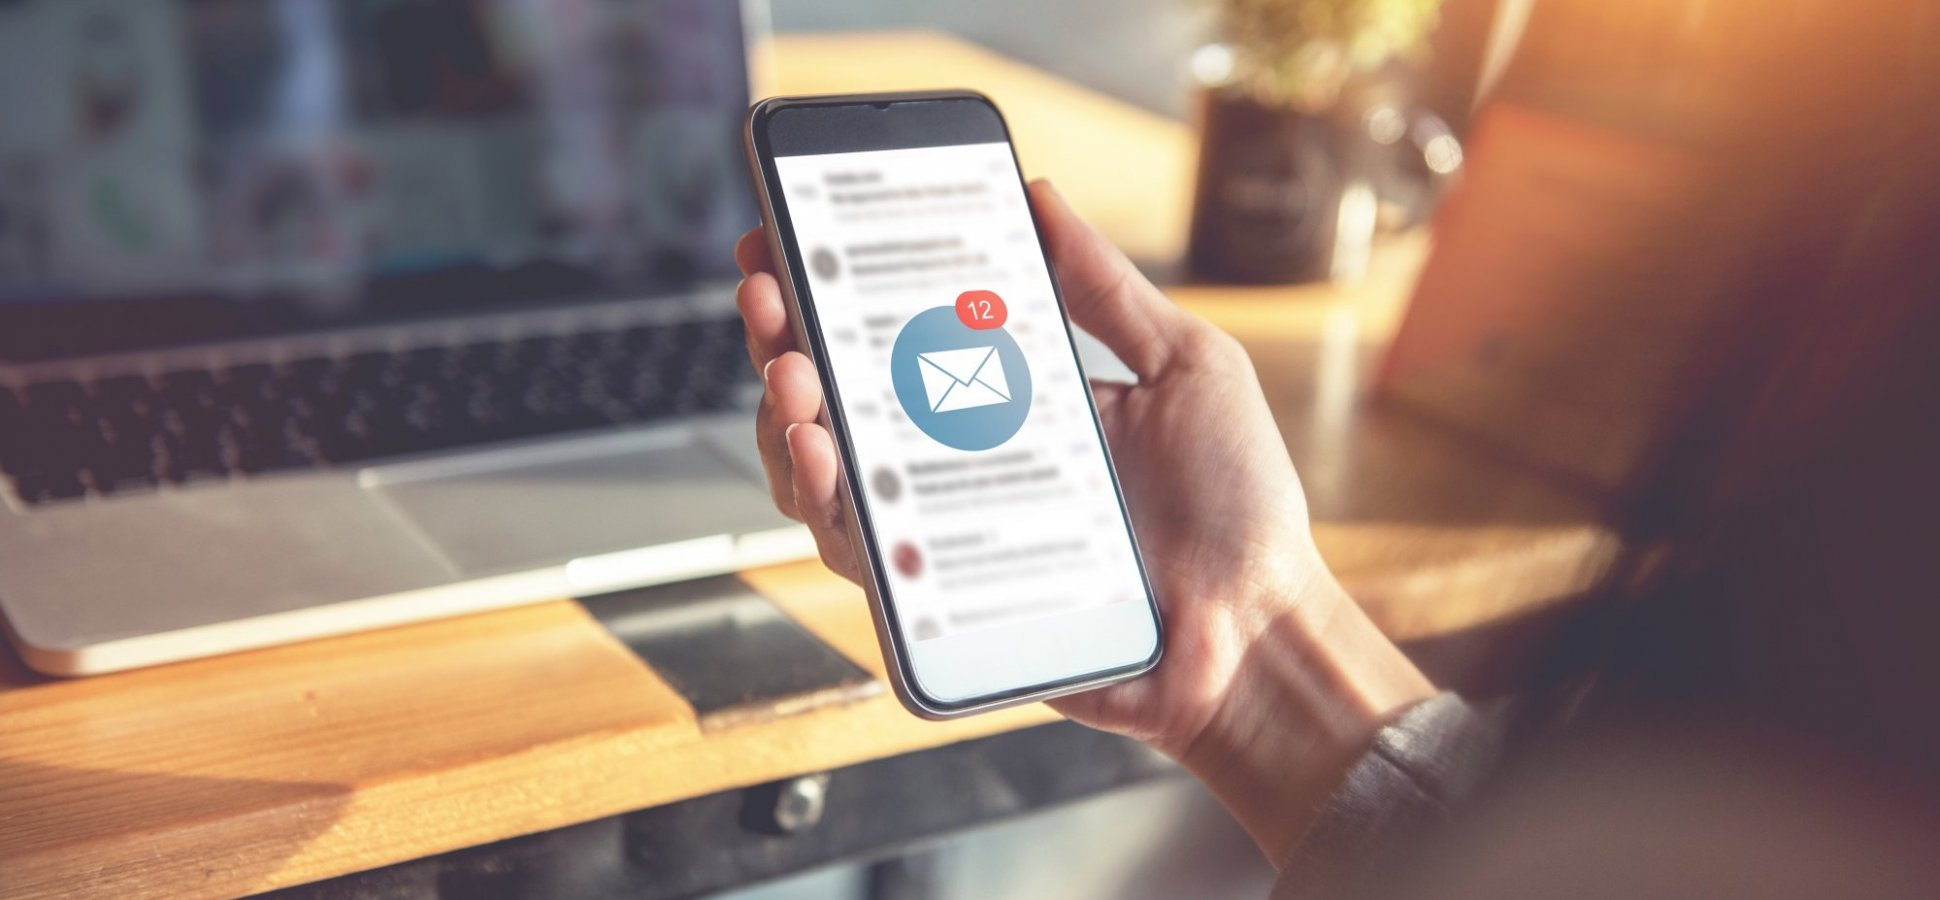 The 5 Best iPhone Mail Apps for Power Users Trying to Stay Productive